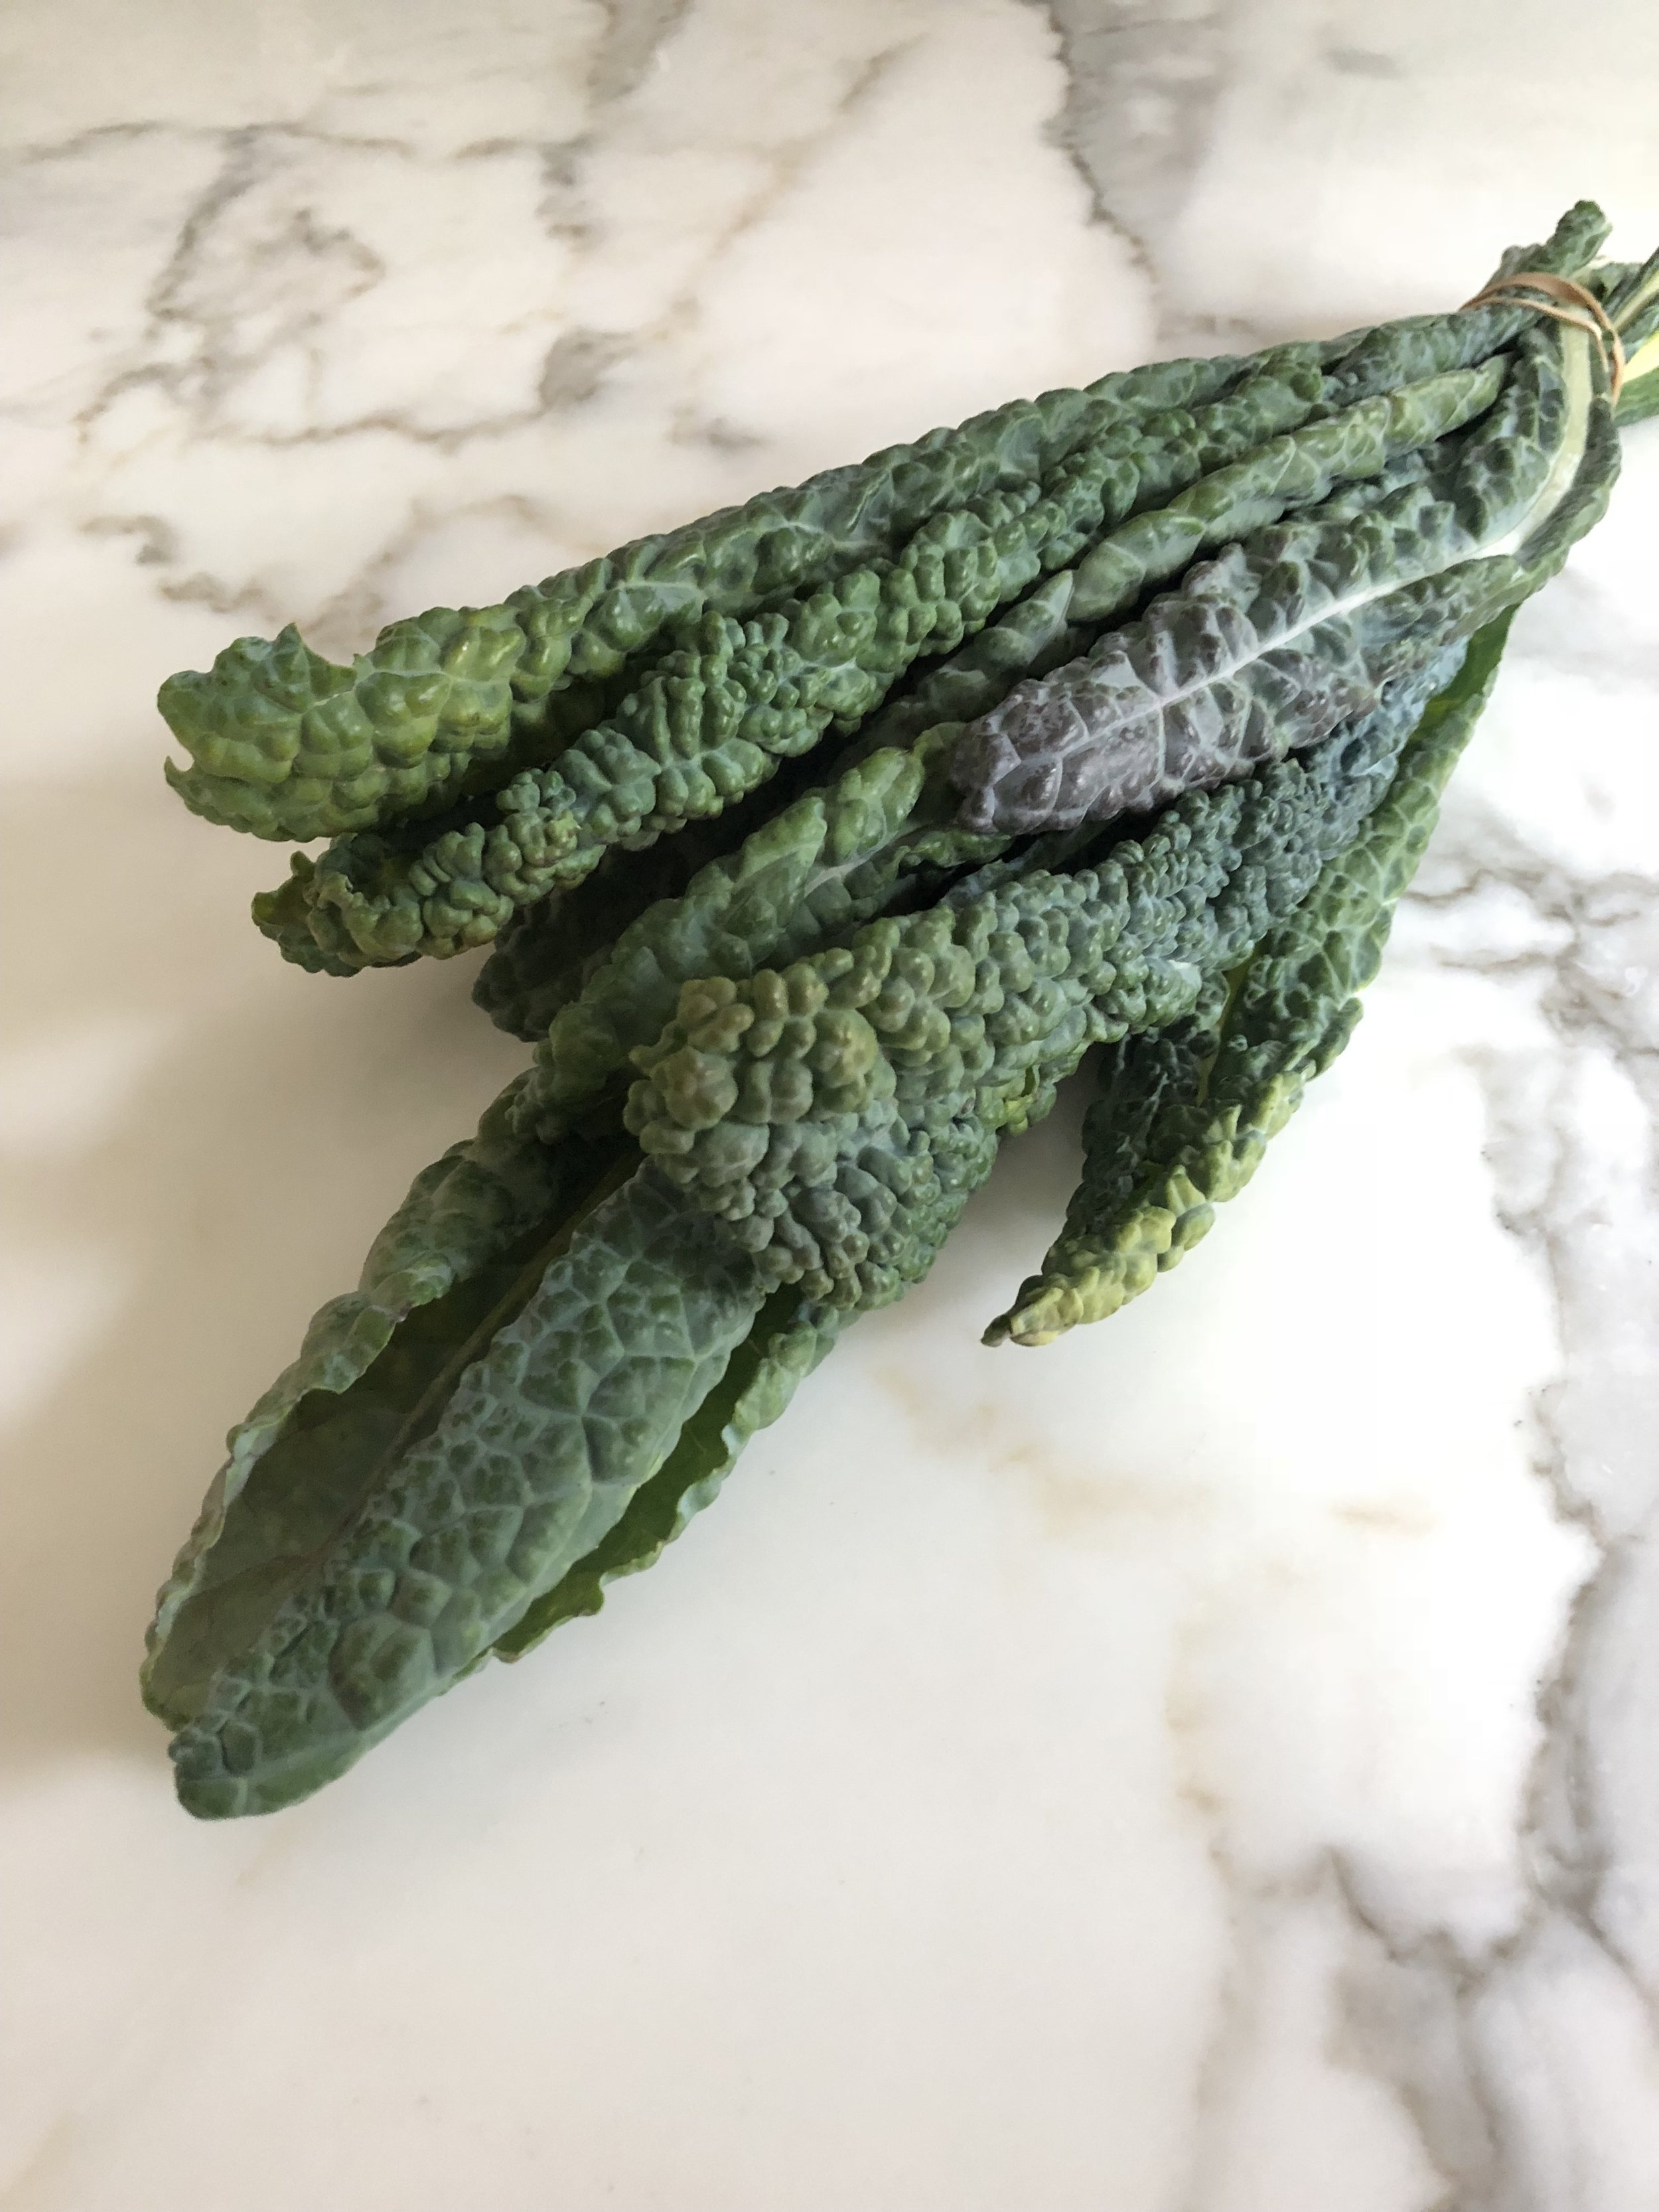 - This is Lacinato, Tuscan, Black or Dinosaur Kale. Any type of Kale works in this salad, but this is the most tender kale and the best option if you are not making the salad ahead of time.